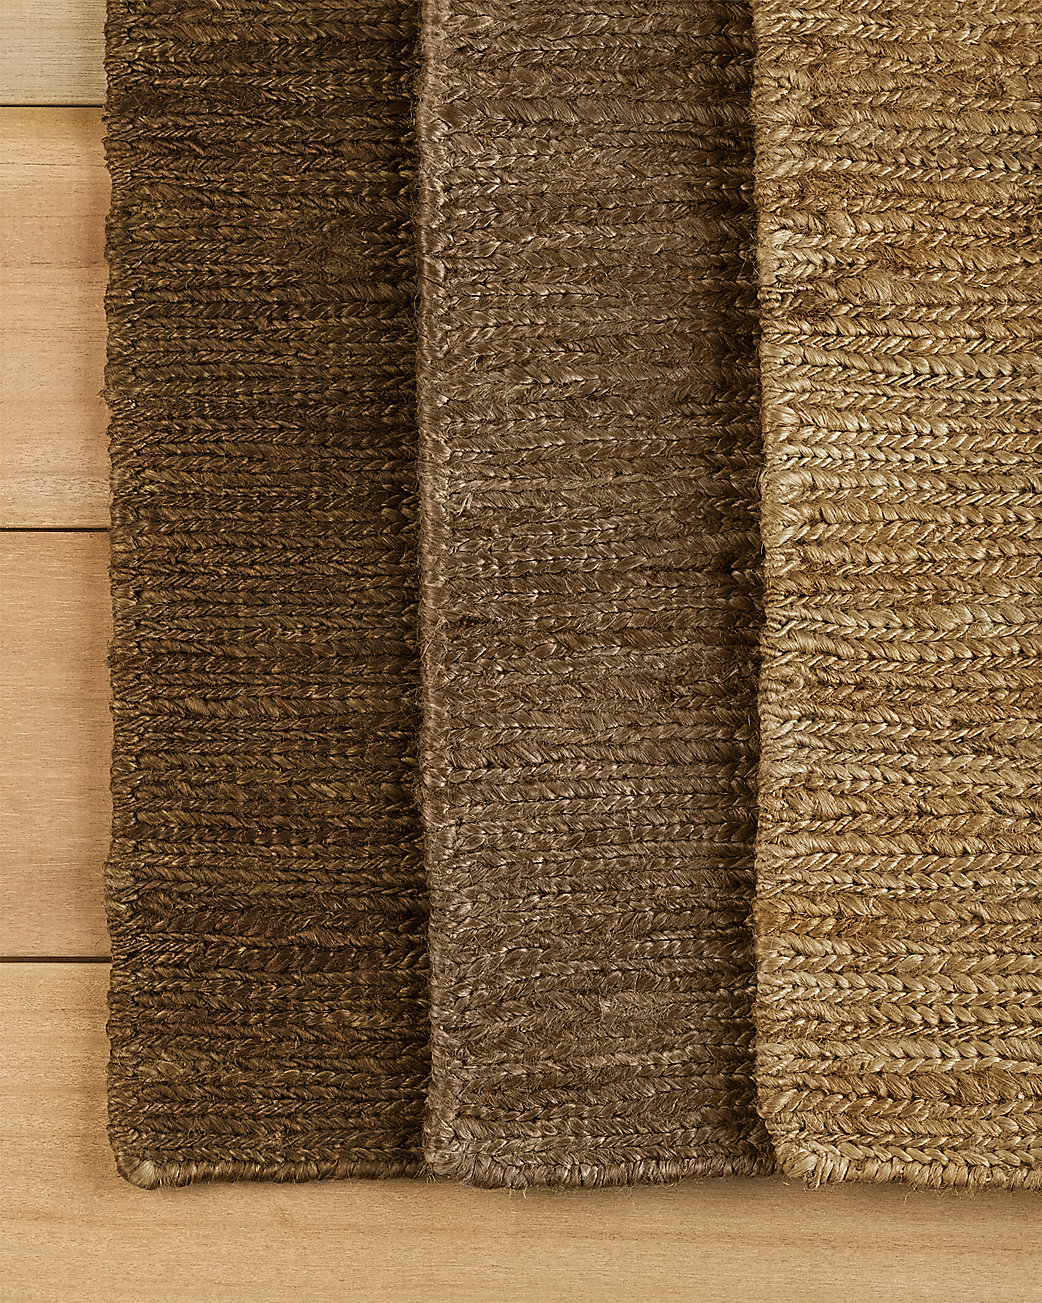 Braided Hemp Rug